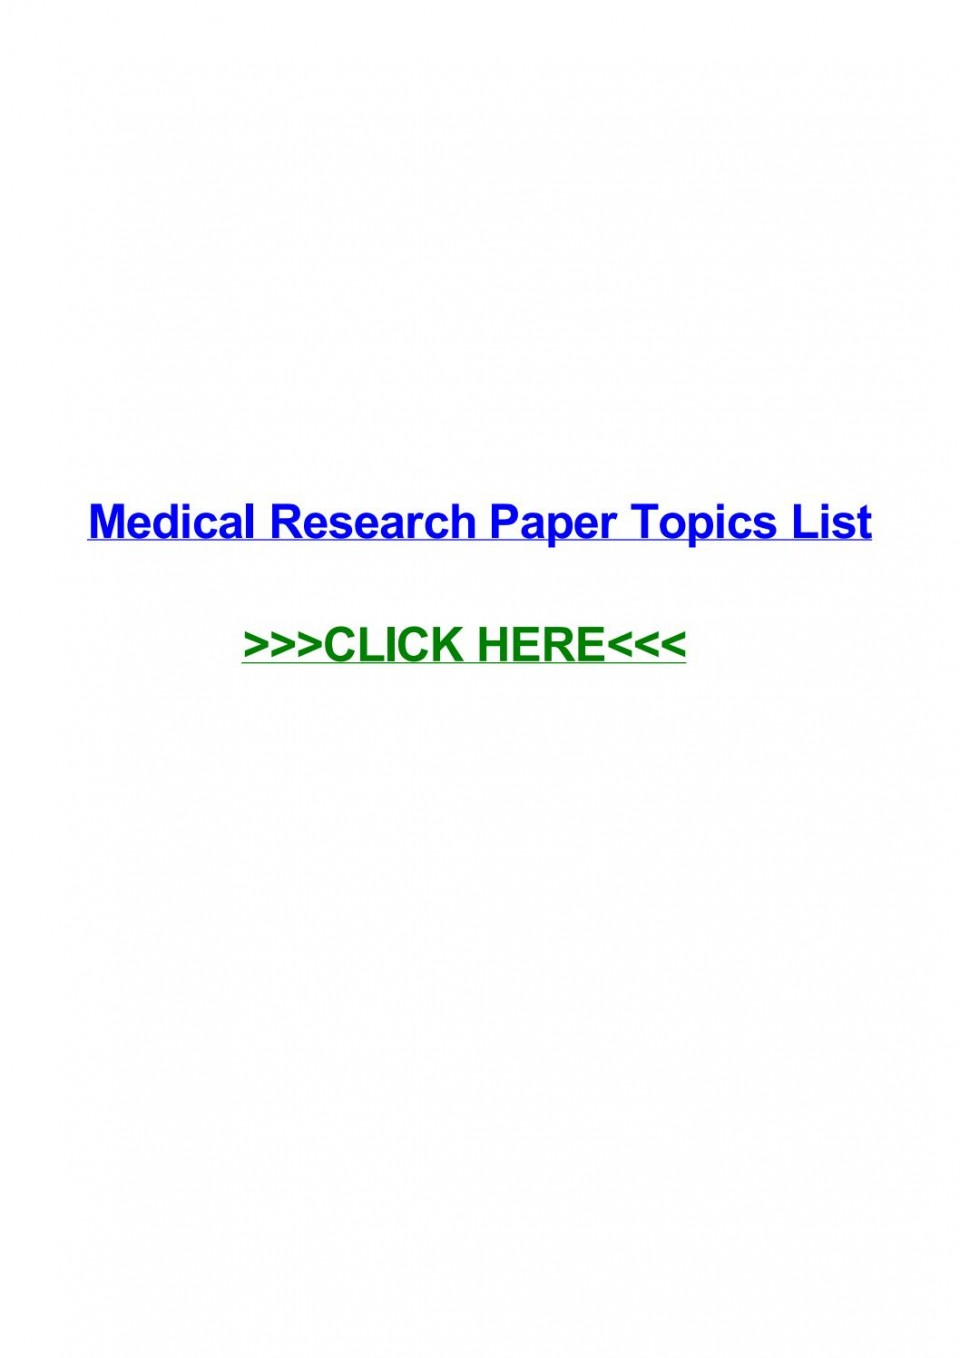 015 Research Paper Medical Topics Page 1 Stupendous Best Ethics For High School Students 960